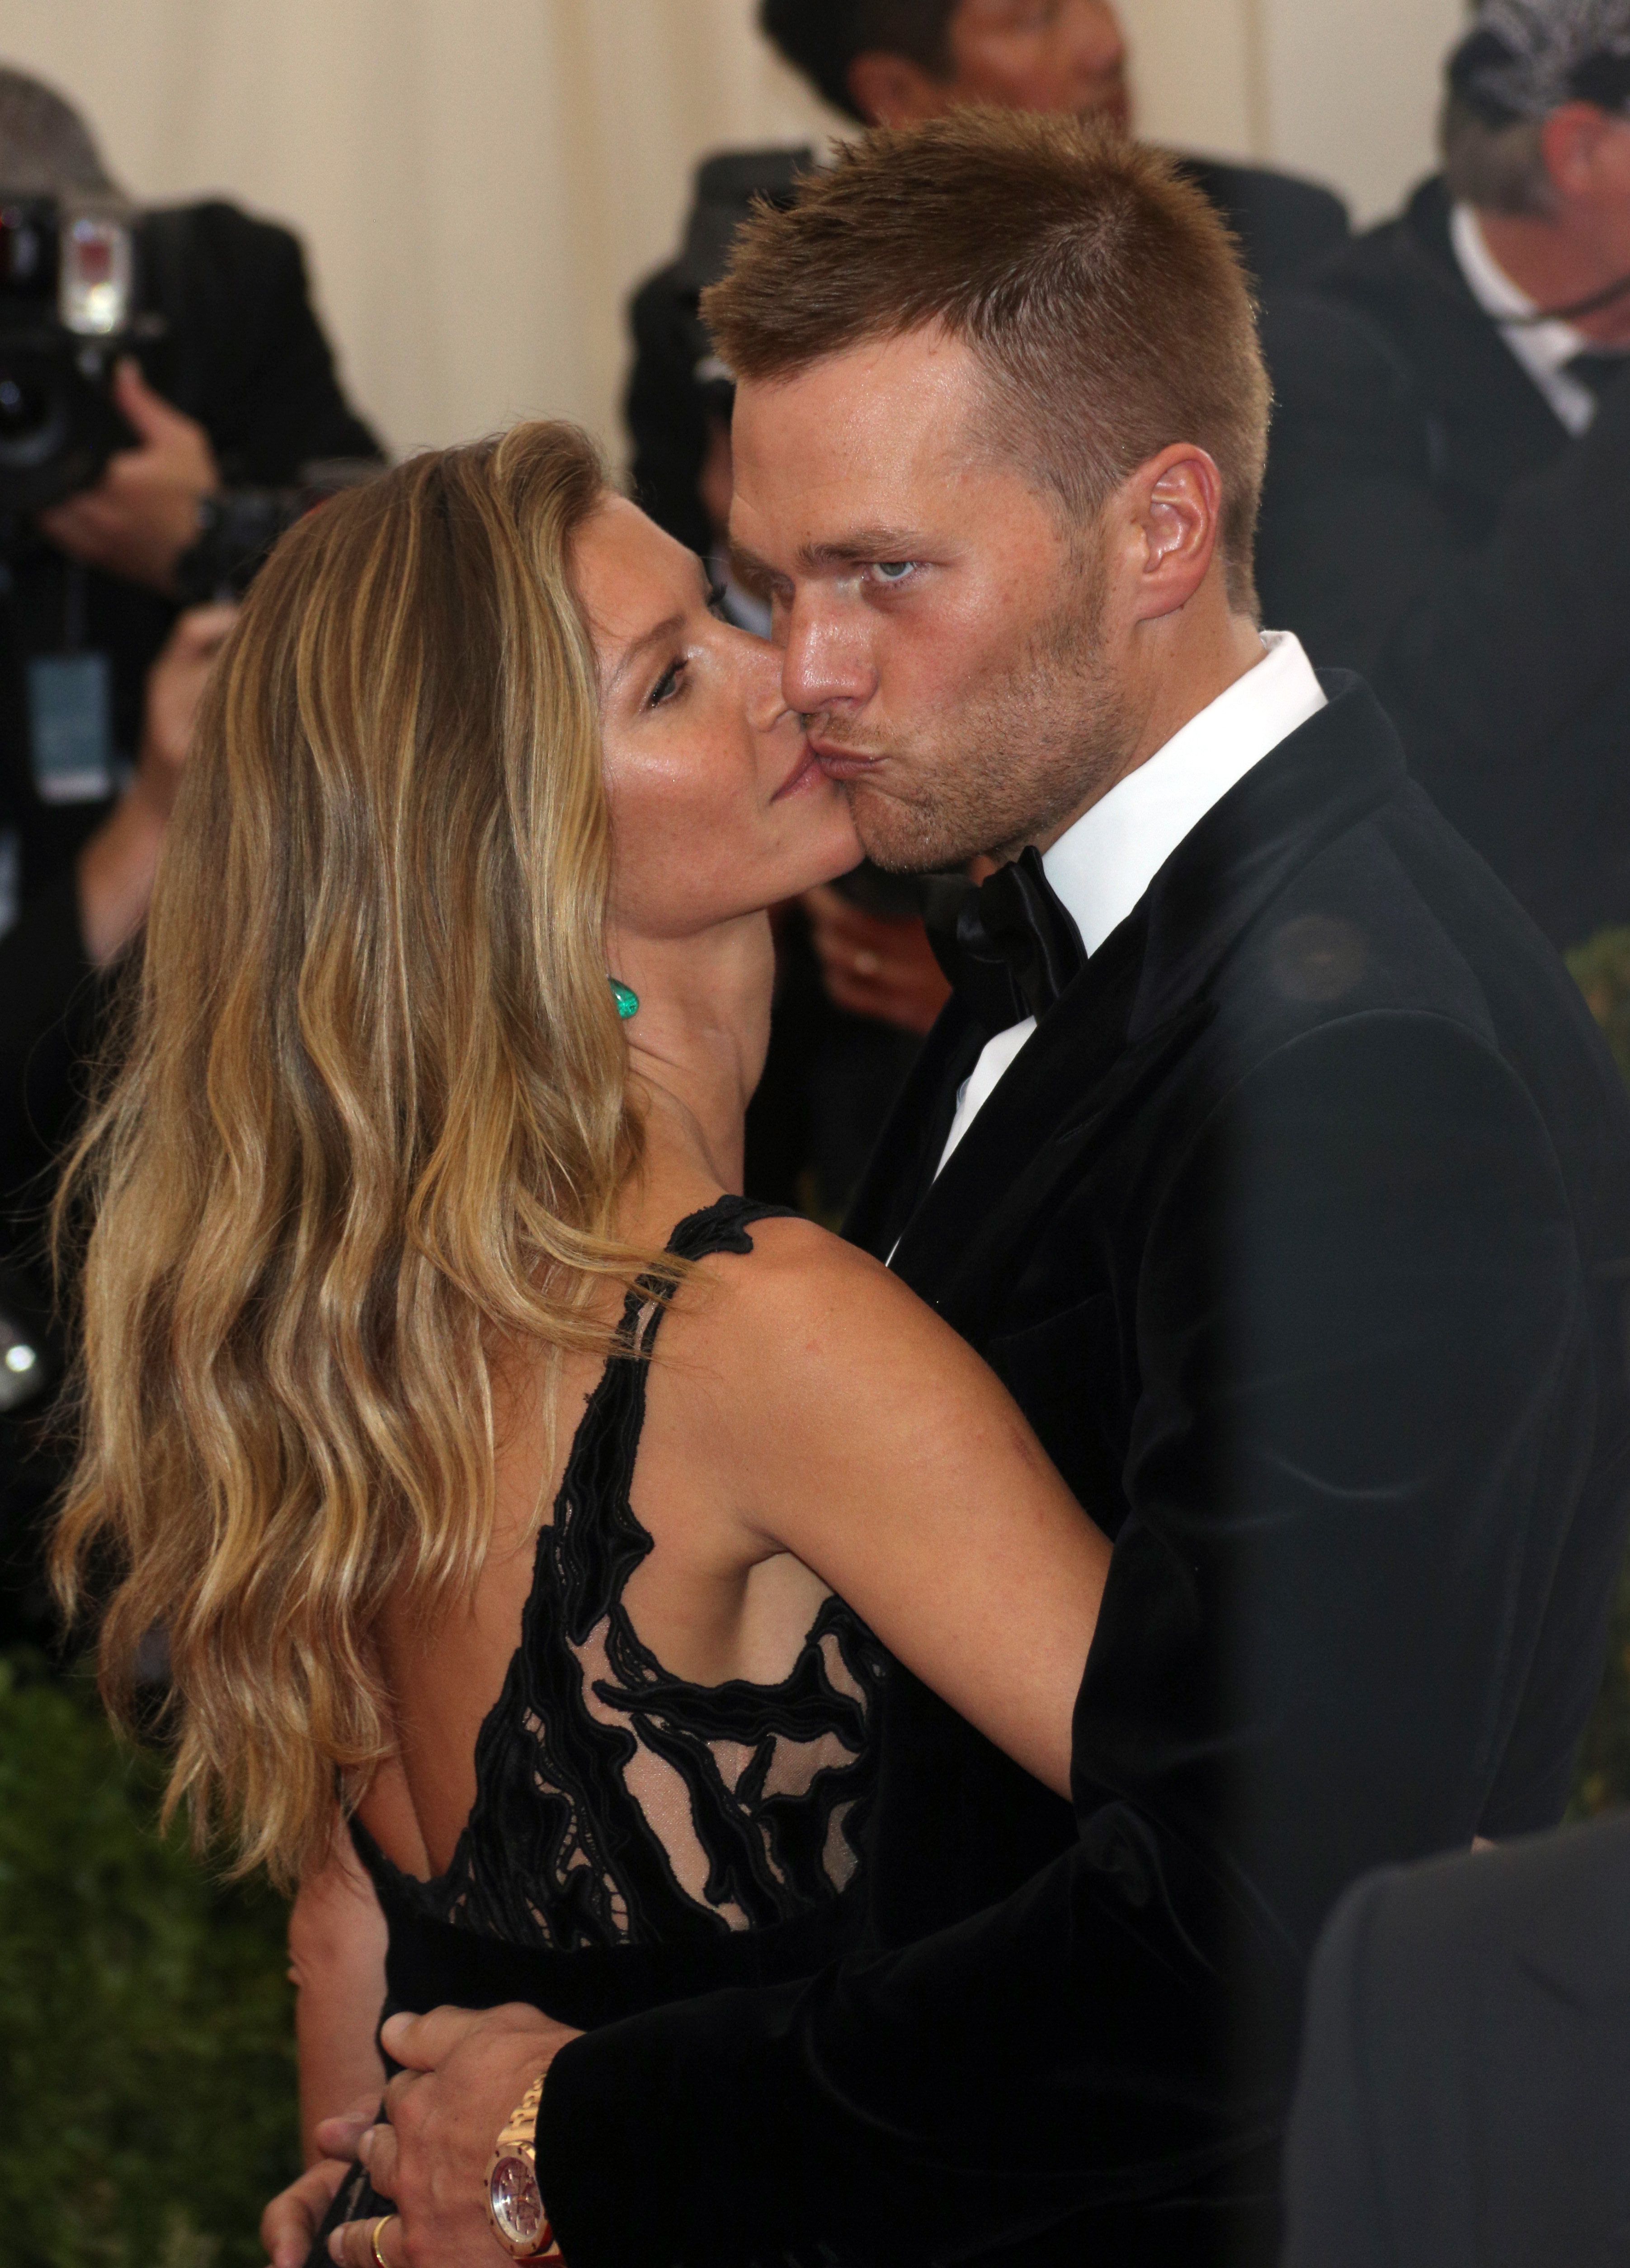 Tom Brady and Gisele Bundchen 'found each other at the right time'